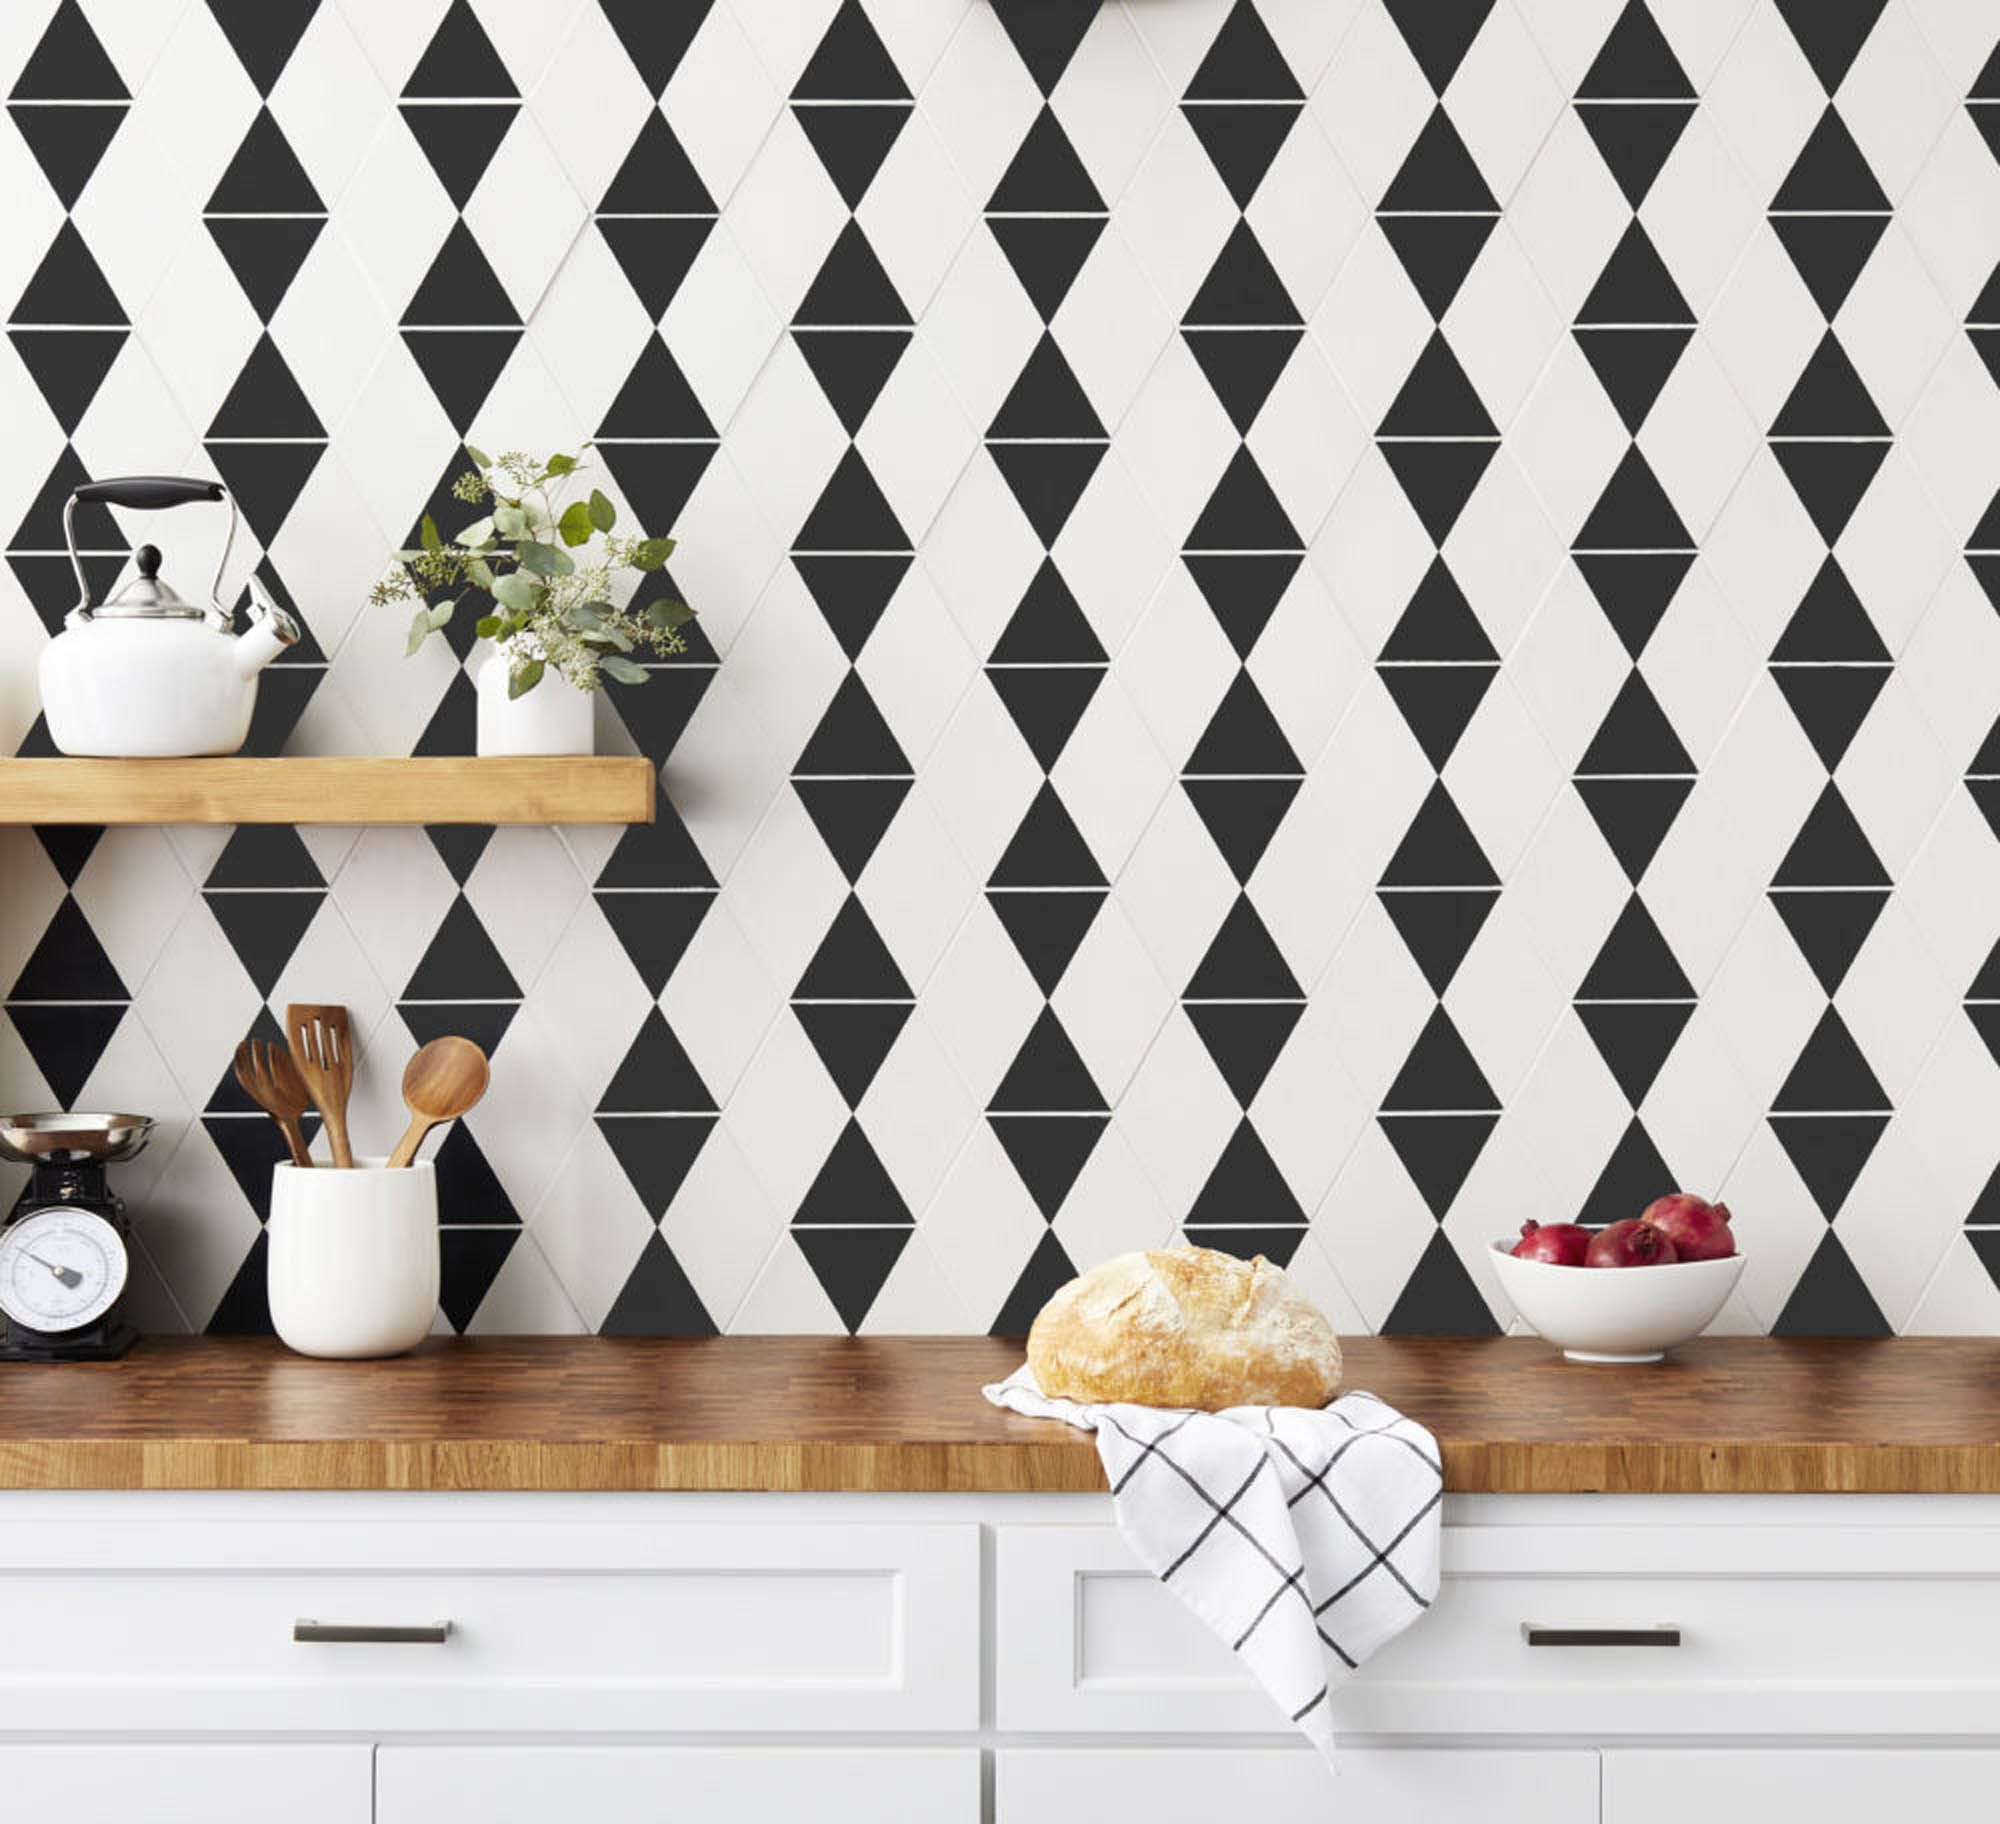 Black and white diamond wall tile.